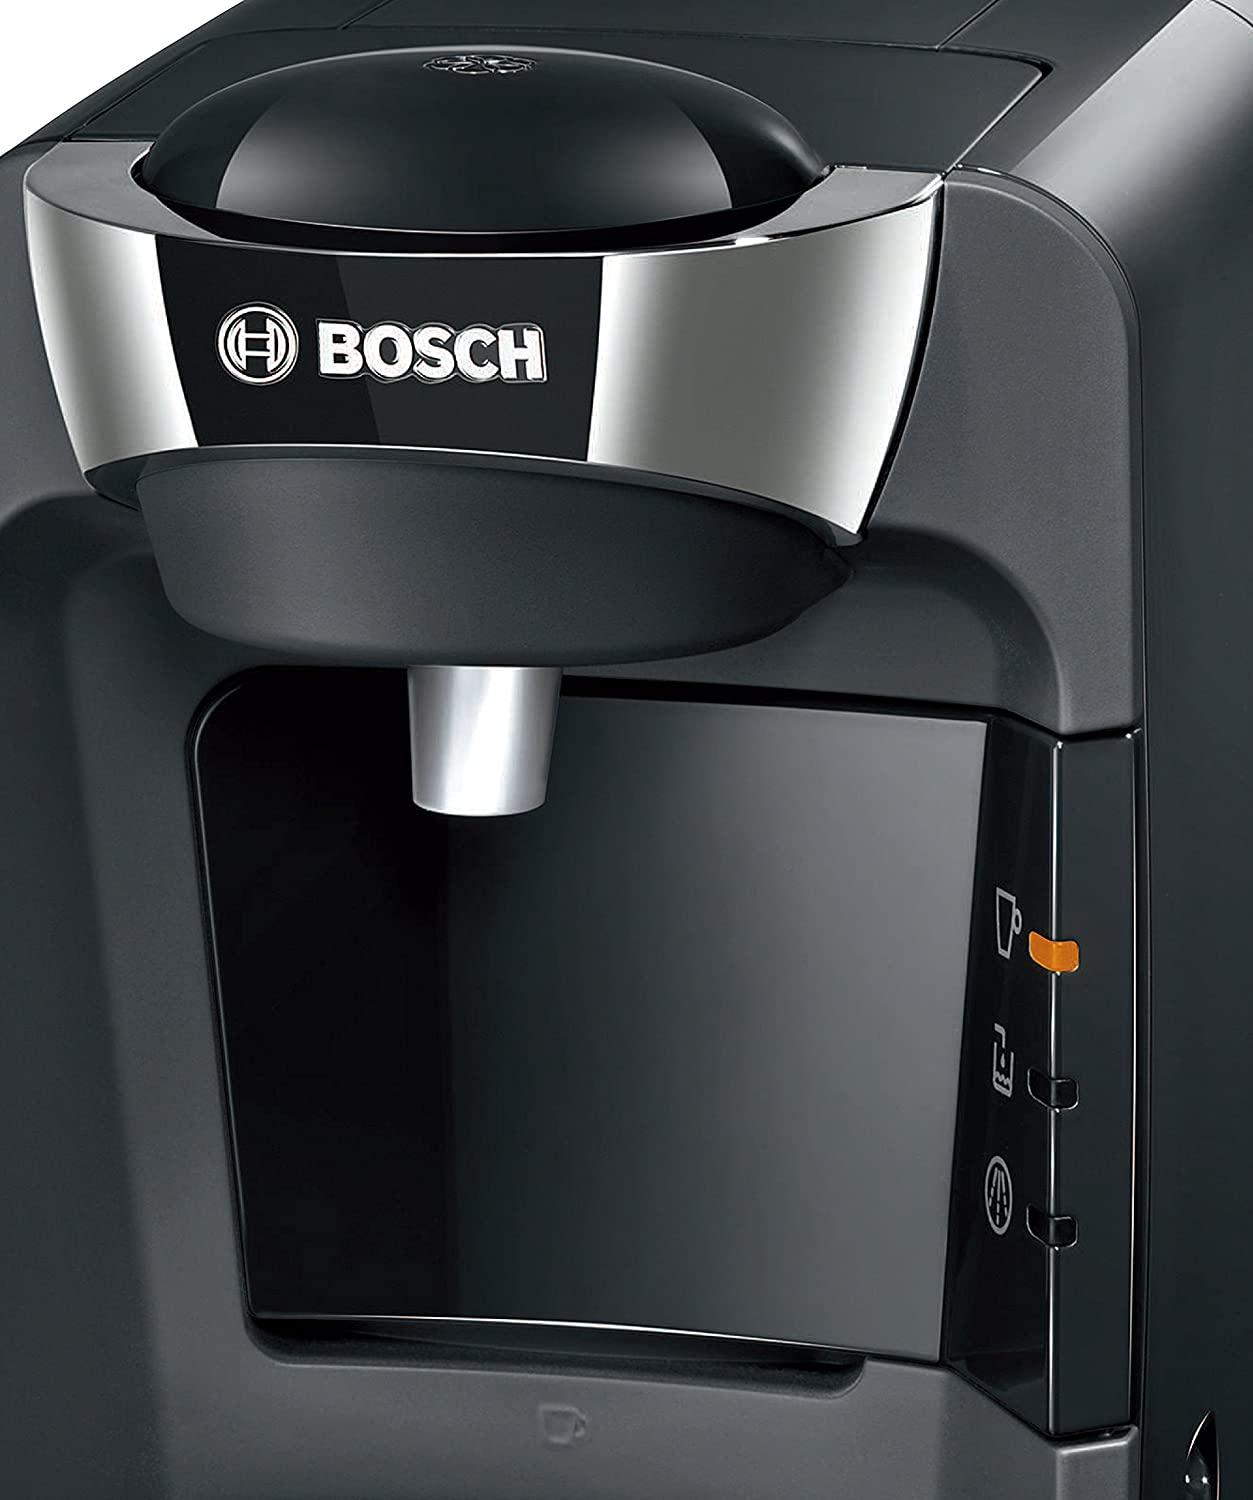 Bosch Coffee Maker Hot Water : Bosch Tassimo Coffee Machine Maker Hot Tea Drinks Coffee Cup Disc House Kitchen eBay